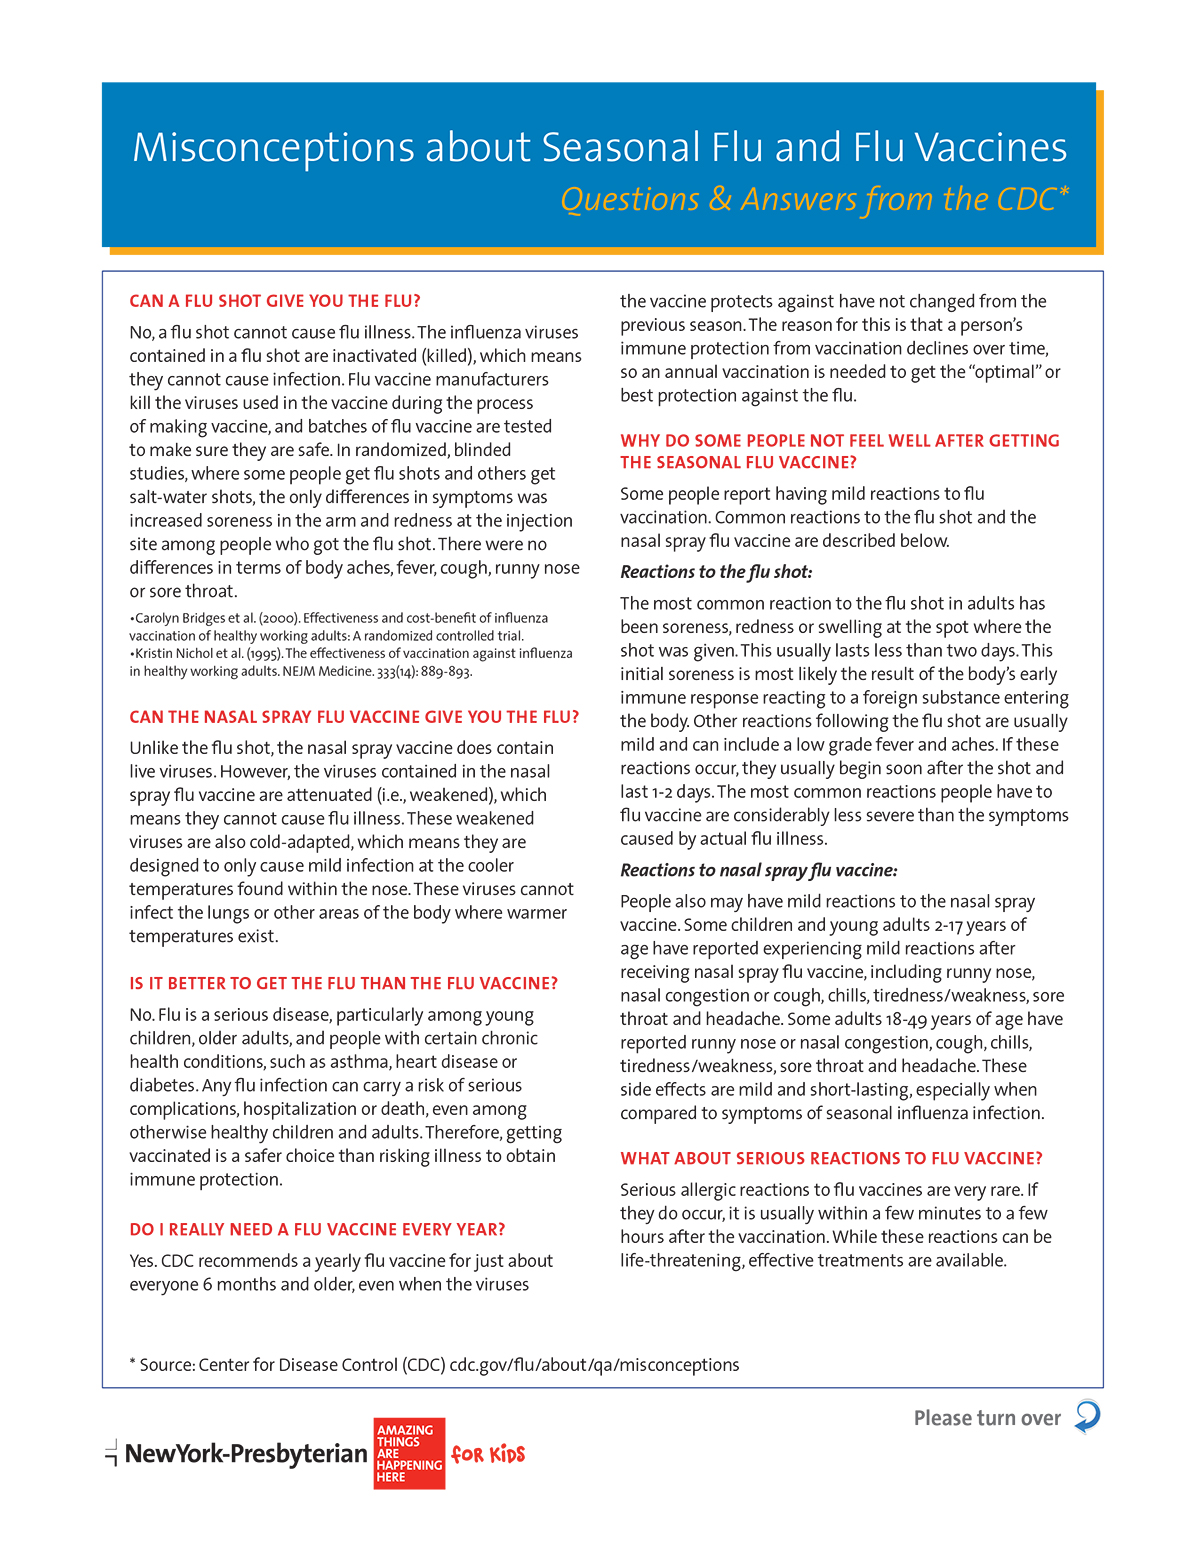 Misconceptions about Seasonal Flu and Flu Vaccines: Questions & Answers from the CDC*